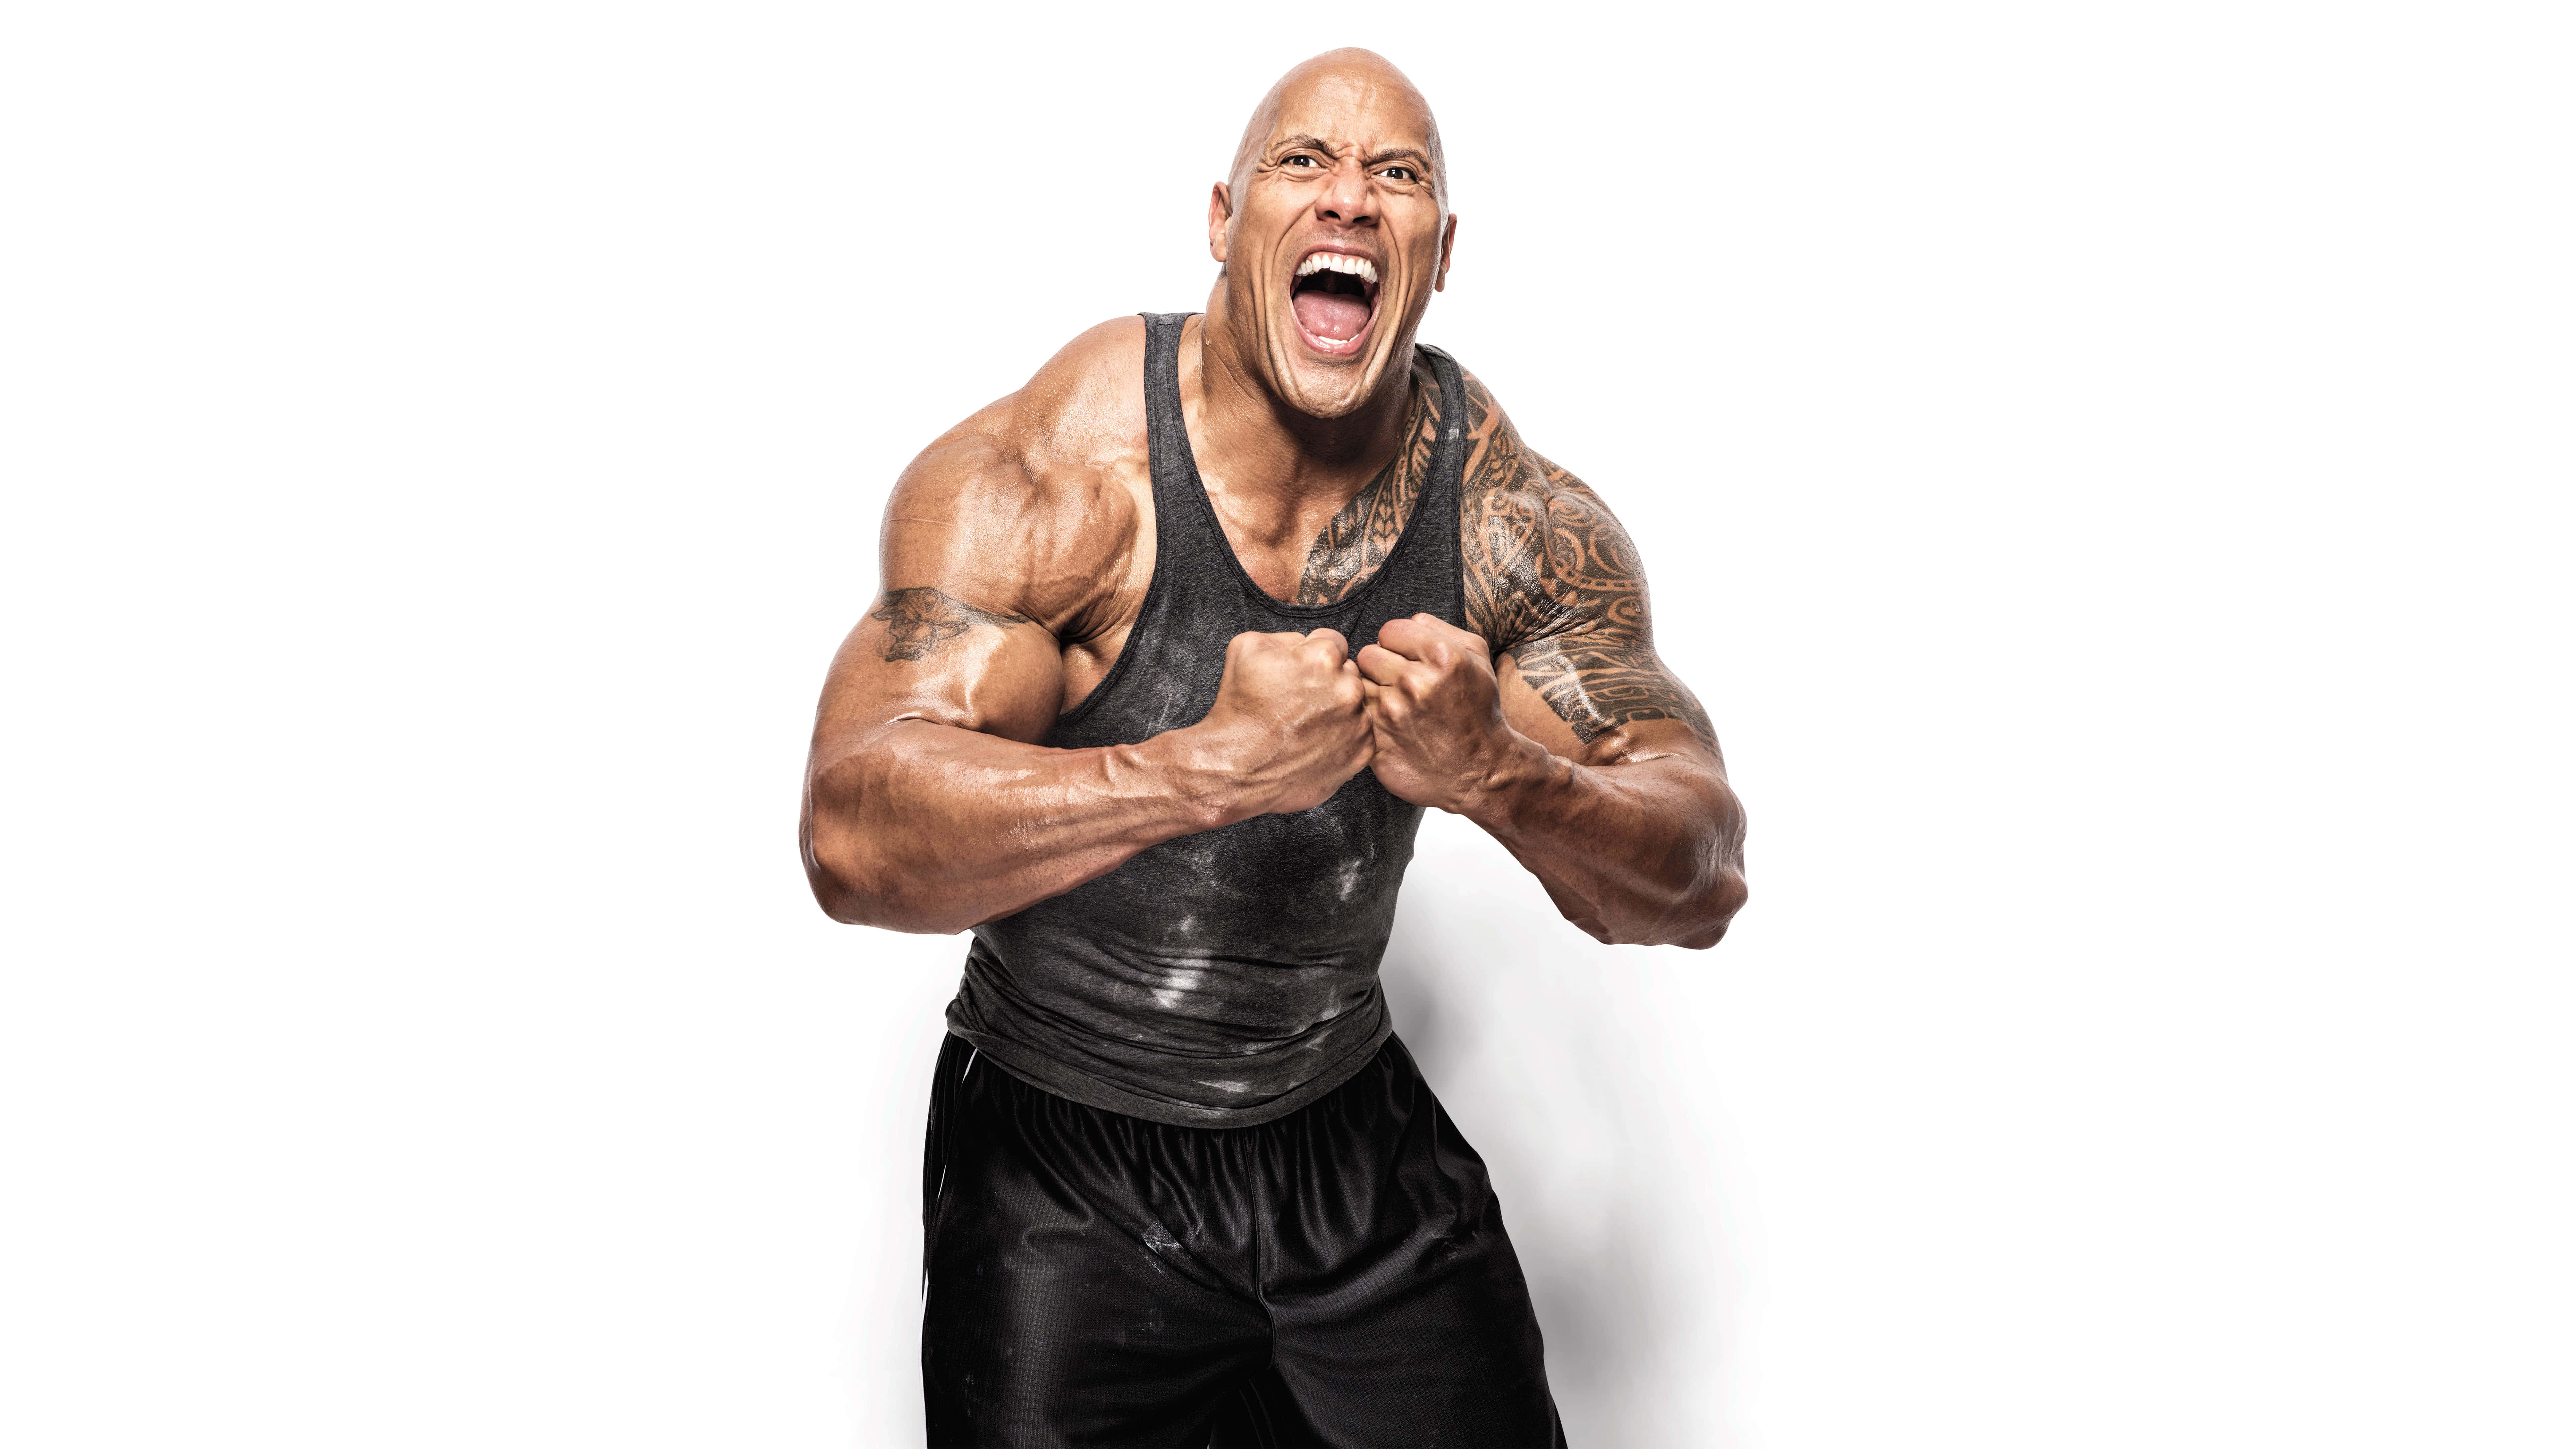 The Rock Dwayne Johnson Flexing UHD 8K Wallpaper